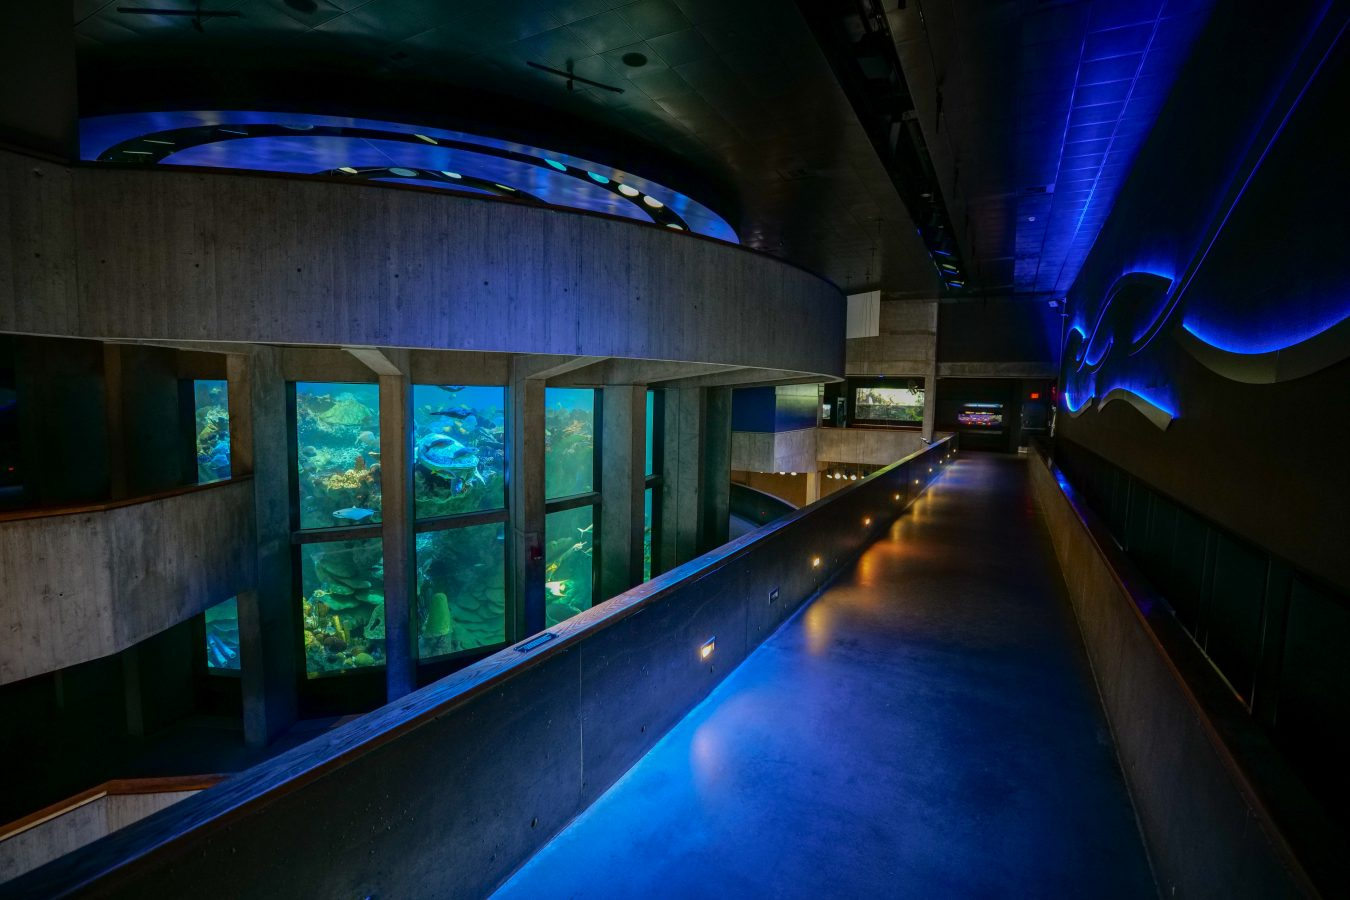 Interior view of giant ocean tank and pathway